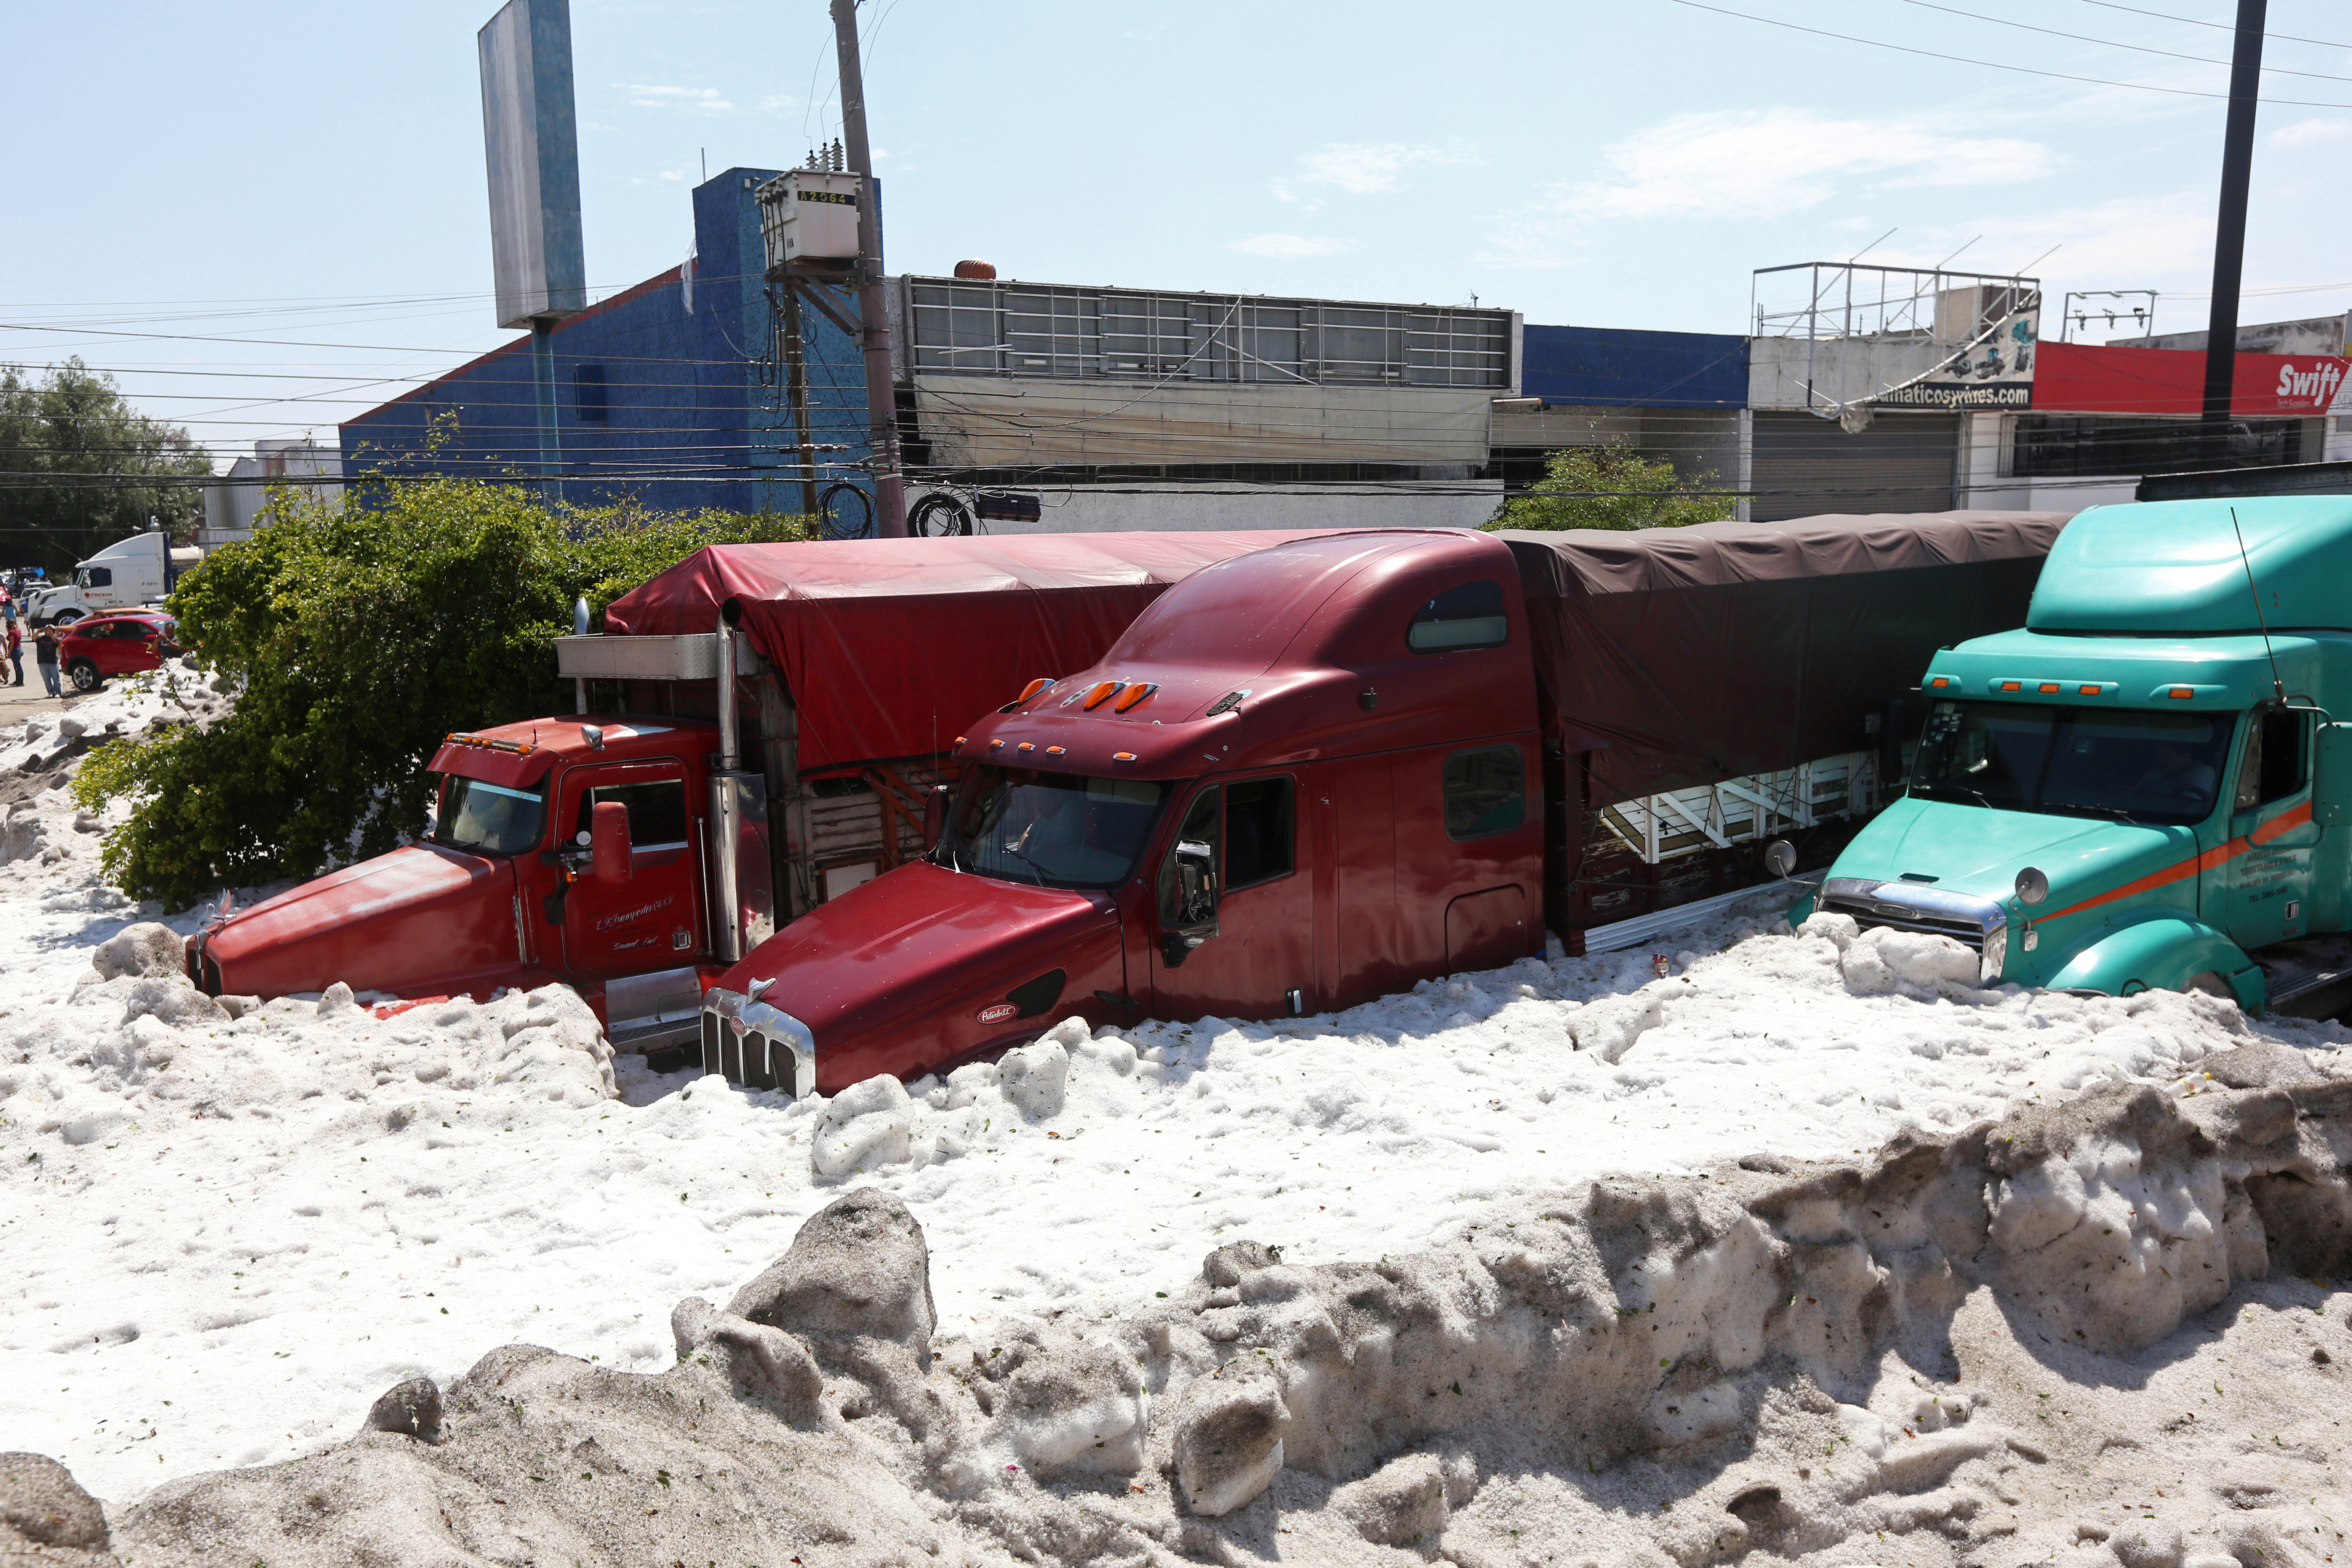 Trucks are buried in ice after a heavy storm of rain and hail which affected some areas of Guadalajara